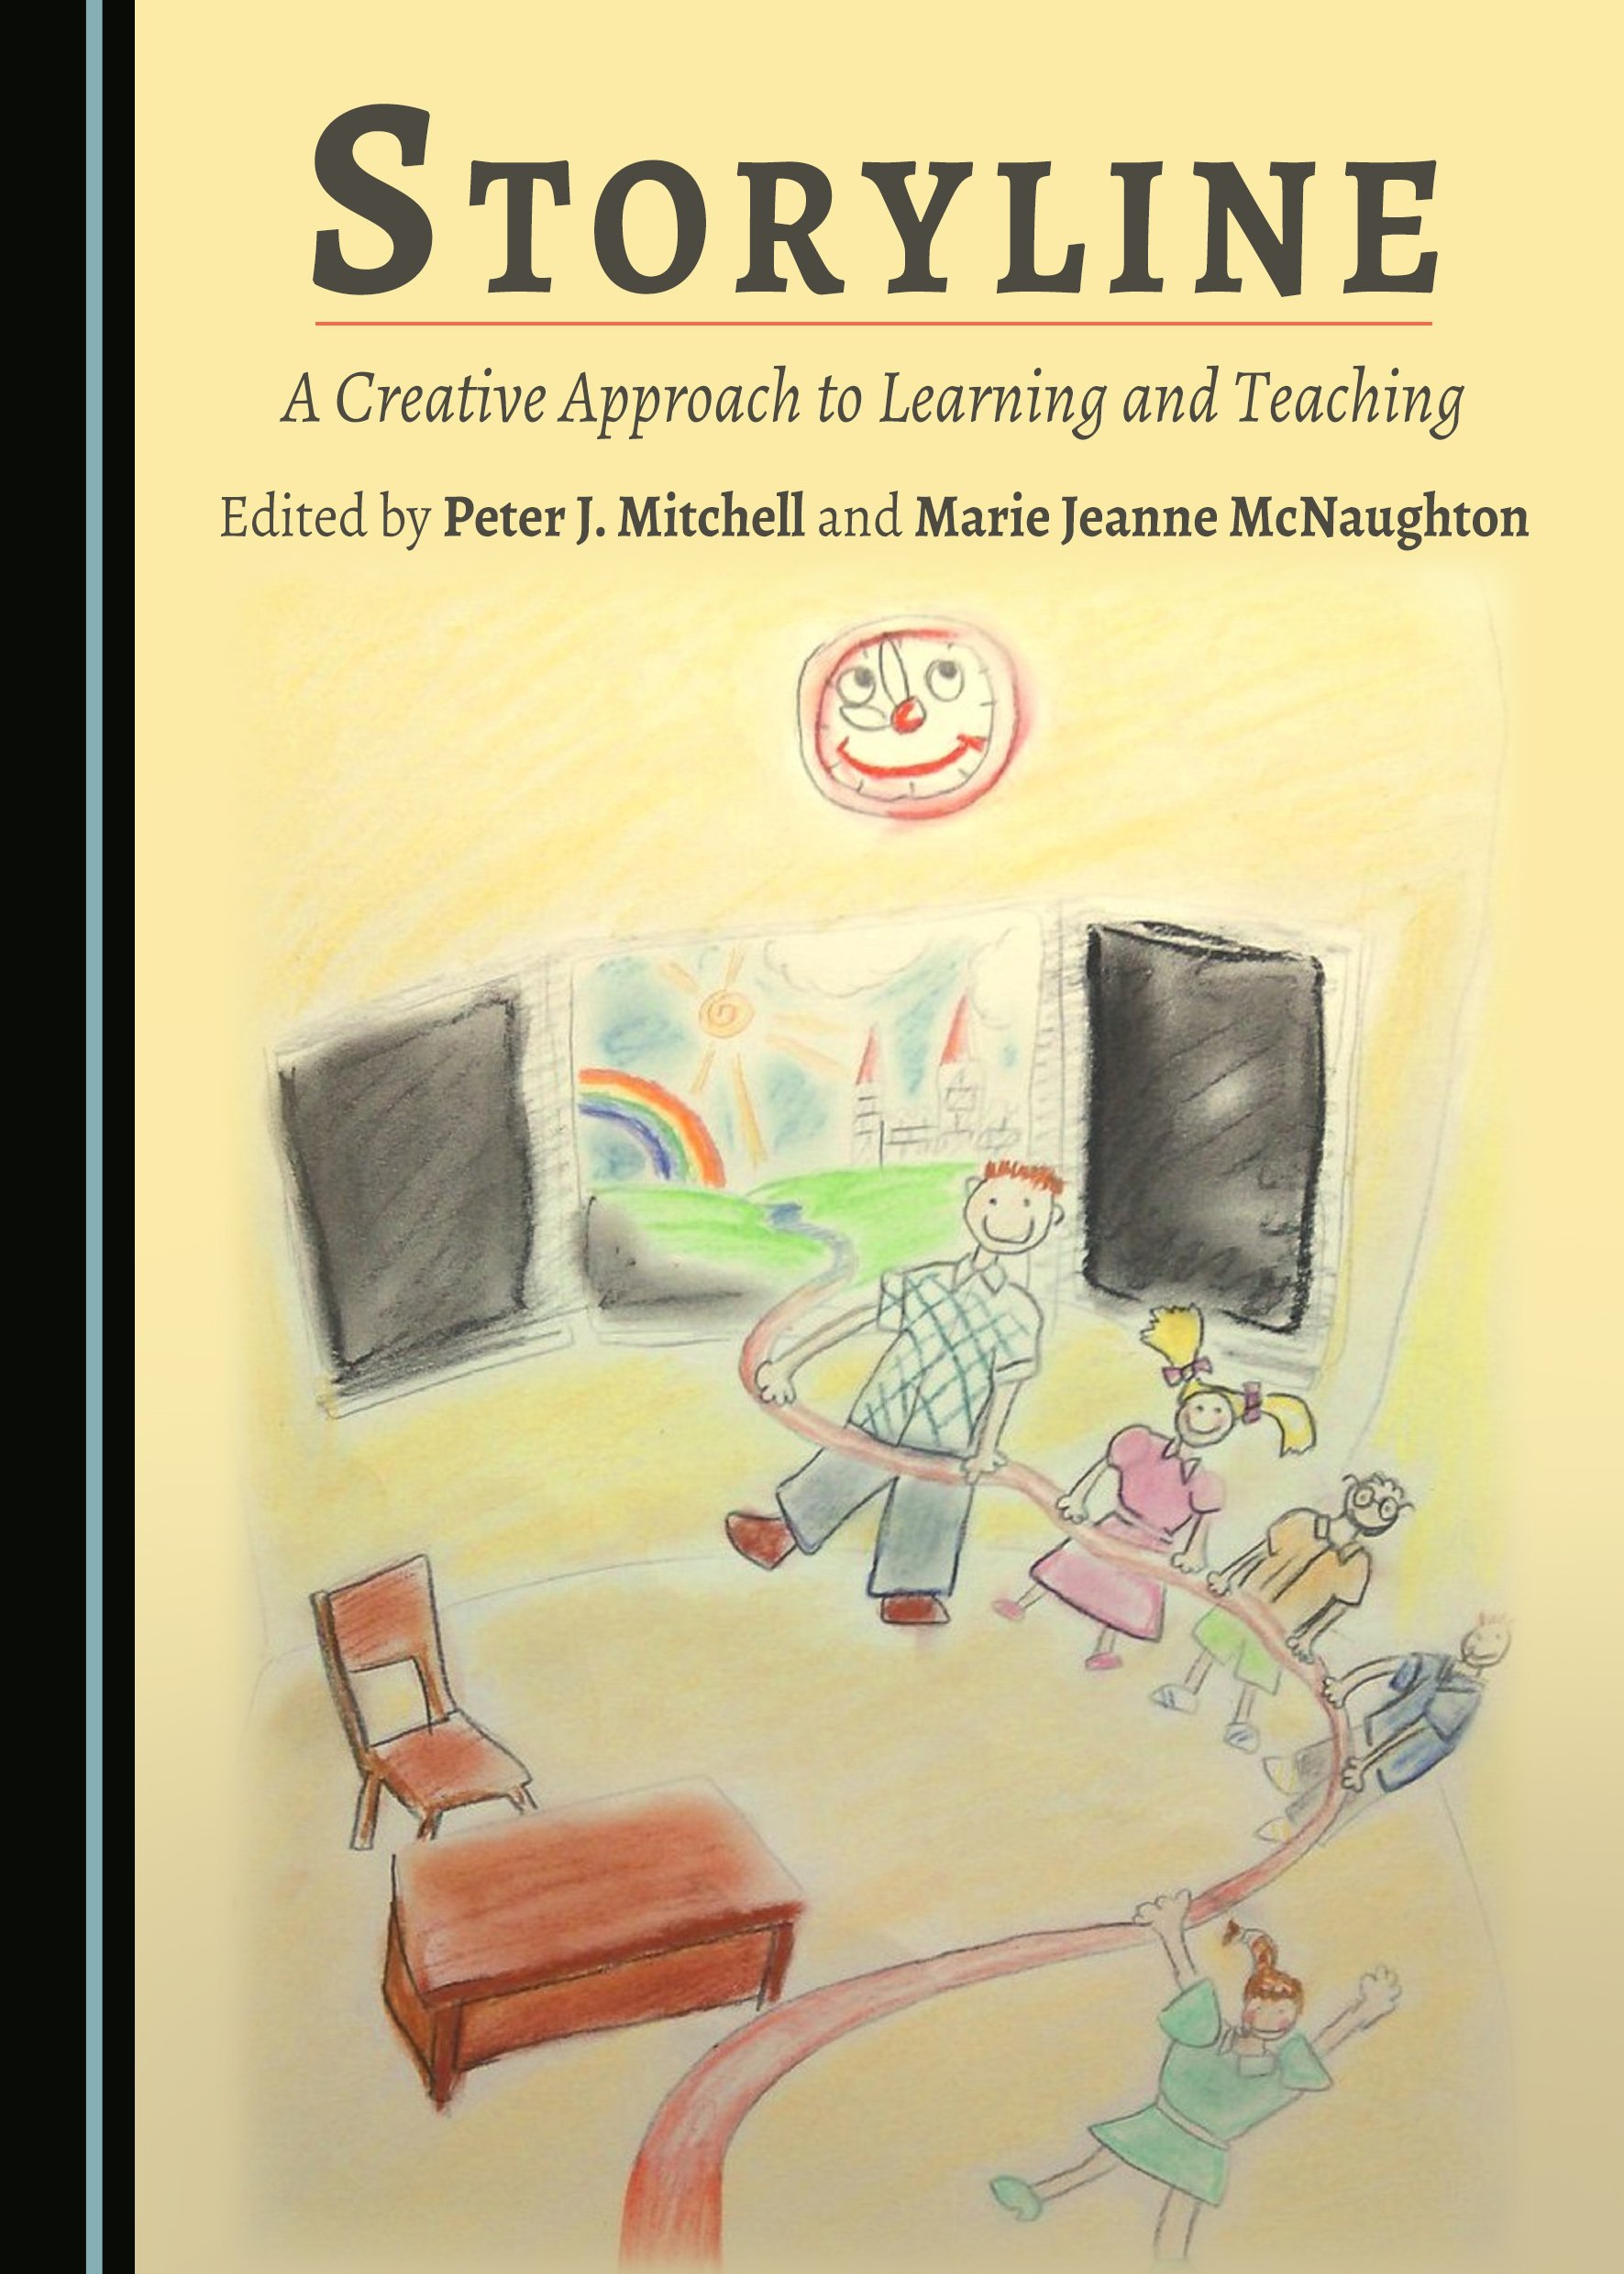 Storyline: A Creative Approach to Learning and Teaching